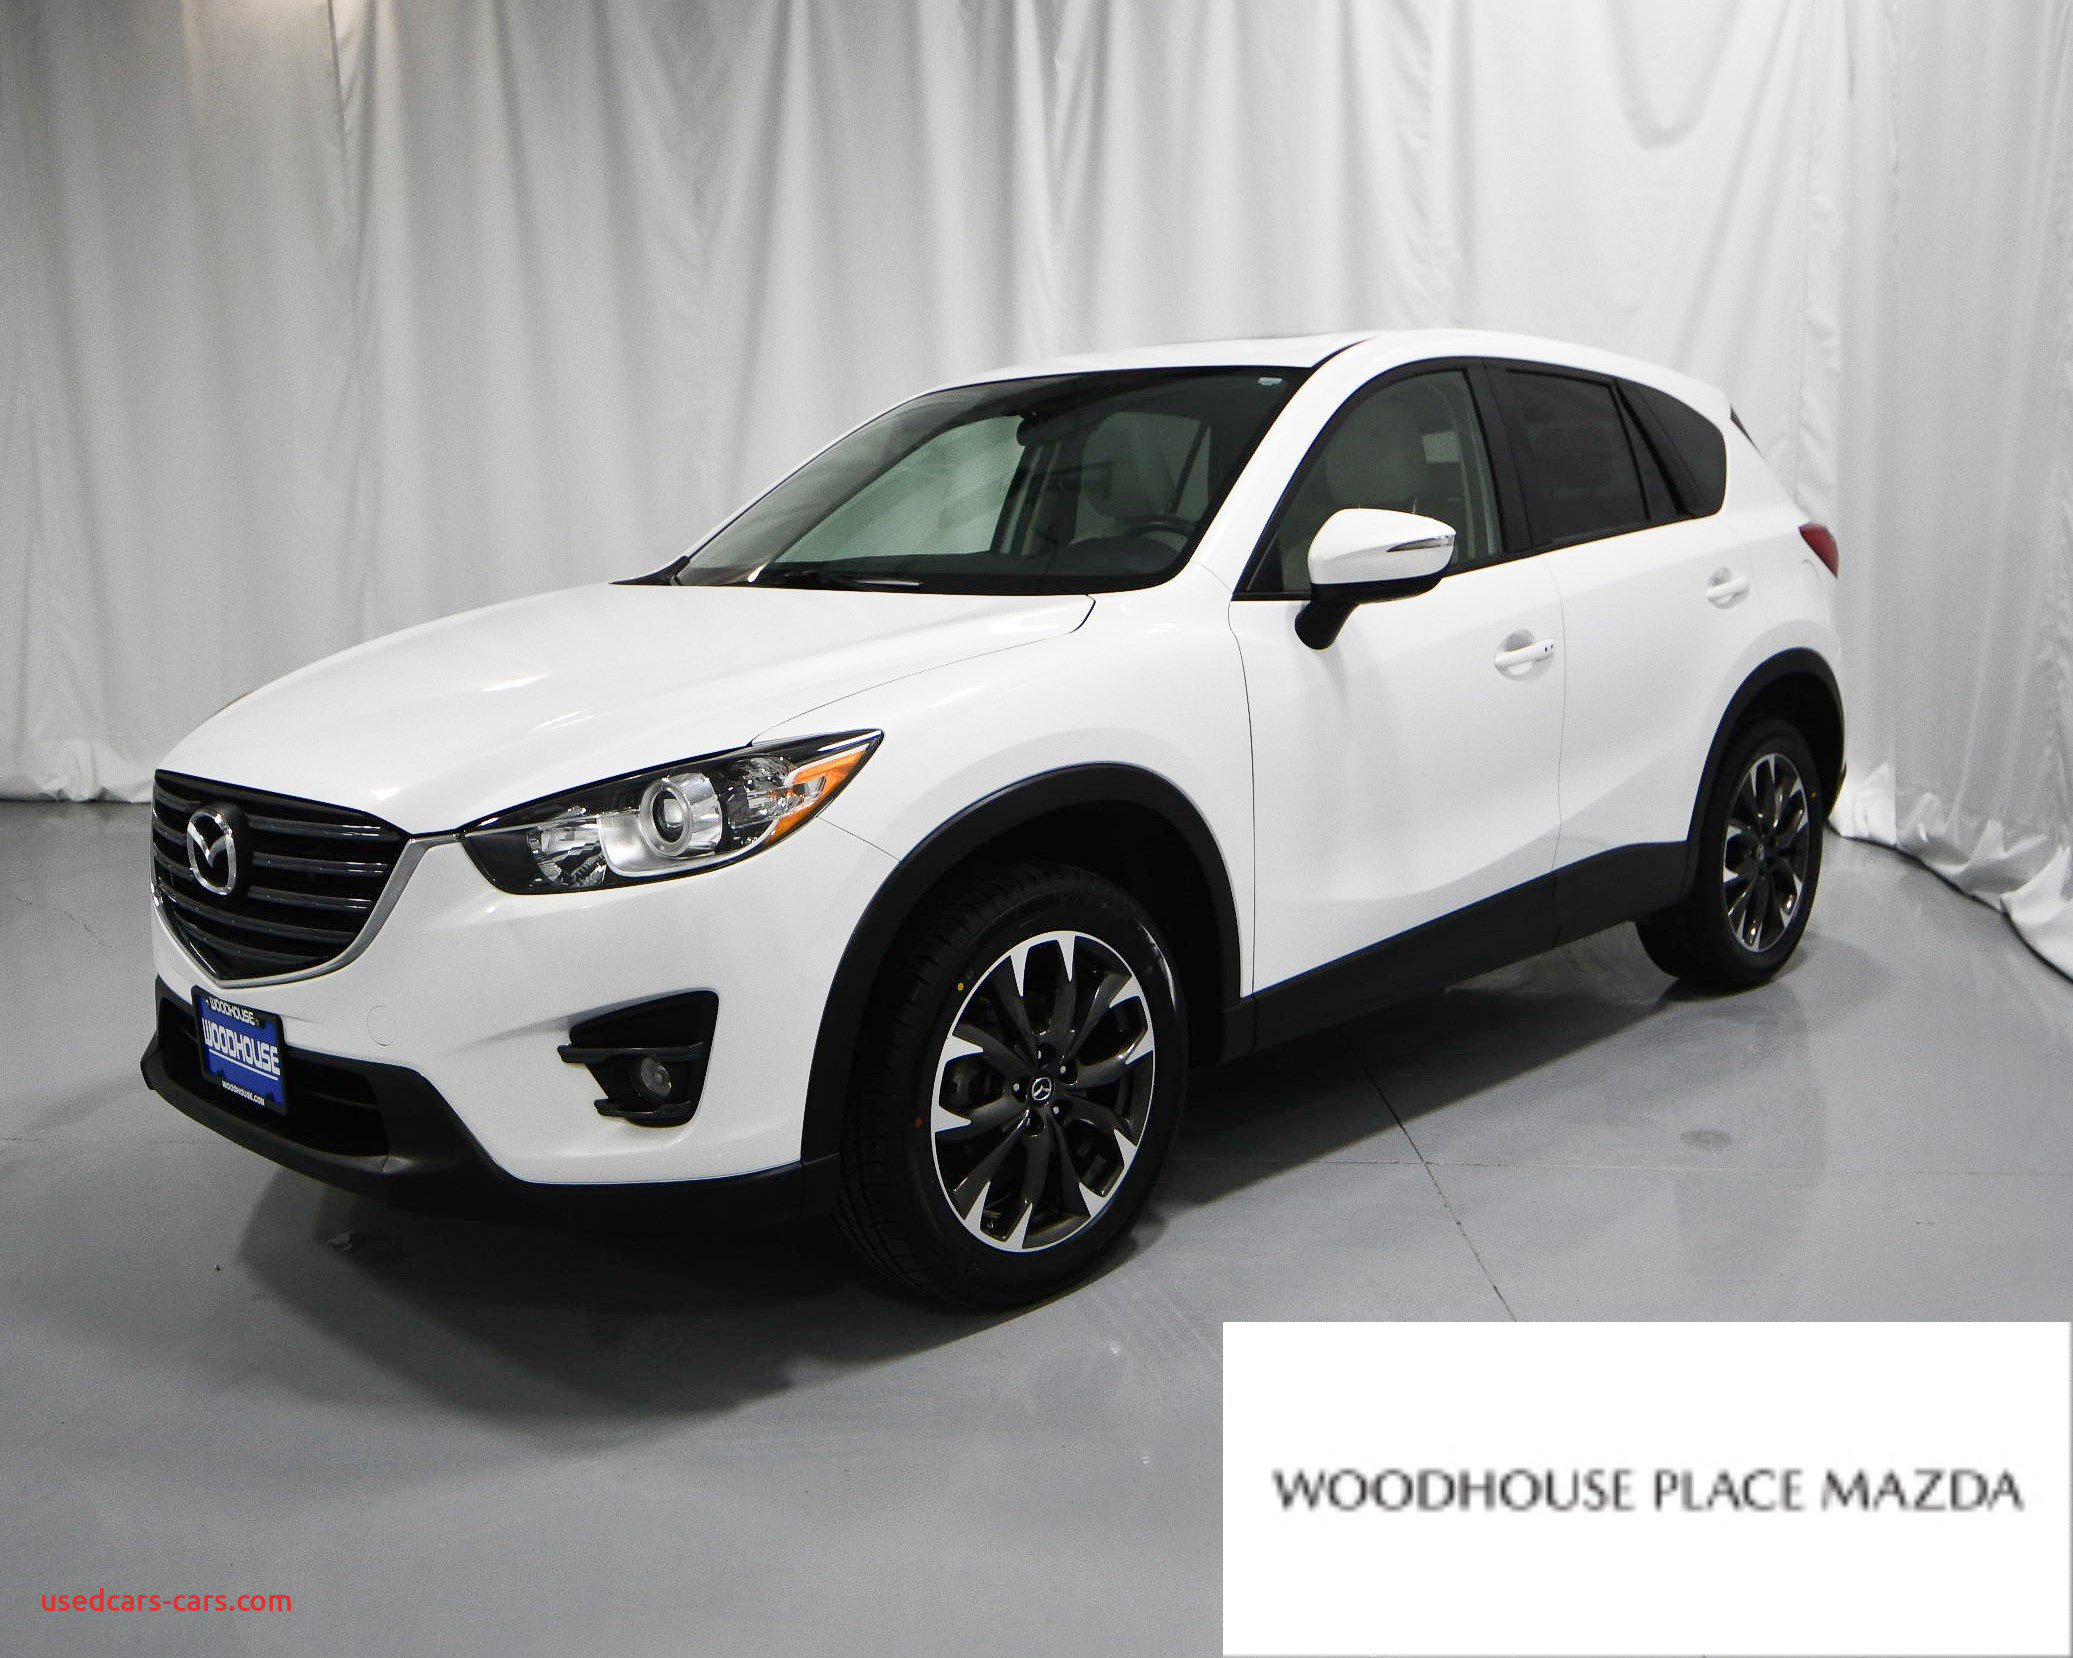 Reviews for 2016 Mazda Cx 5 Lovely Pre Owned 2016 Mazda Cx 5 Grand touring with Navigation